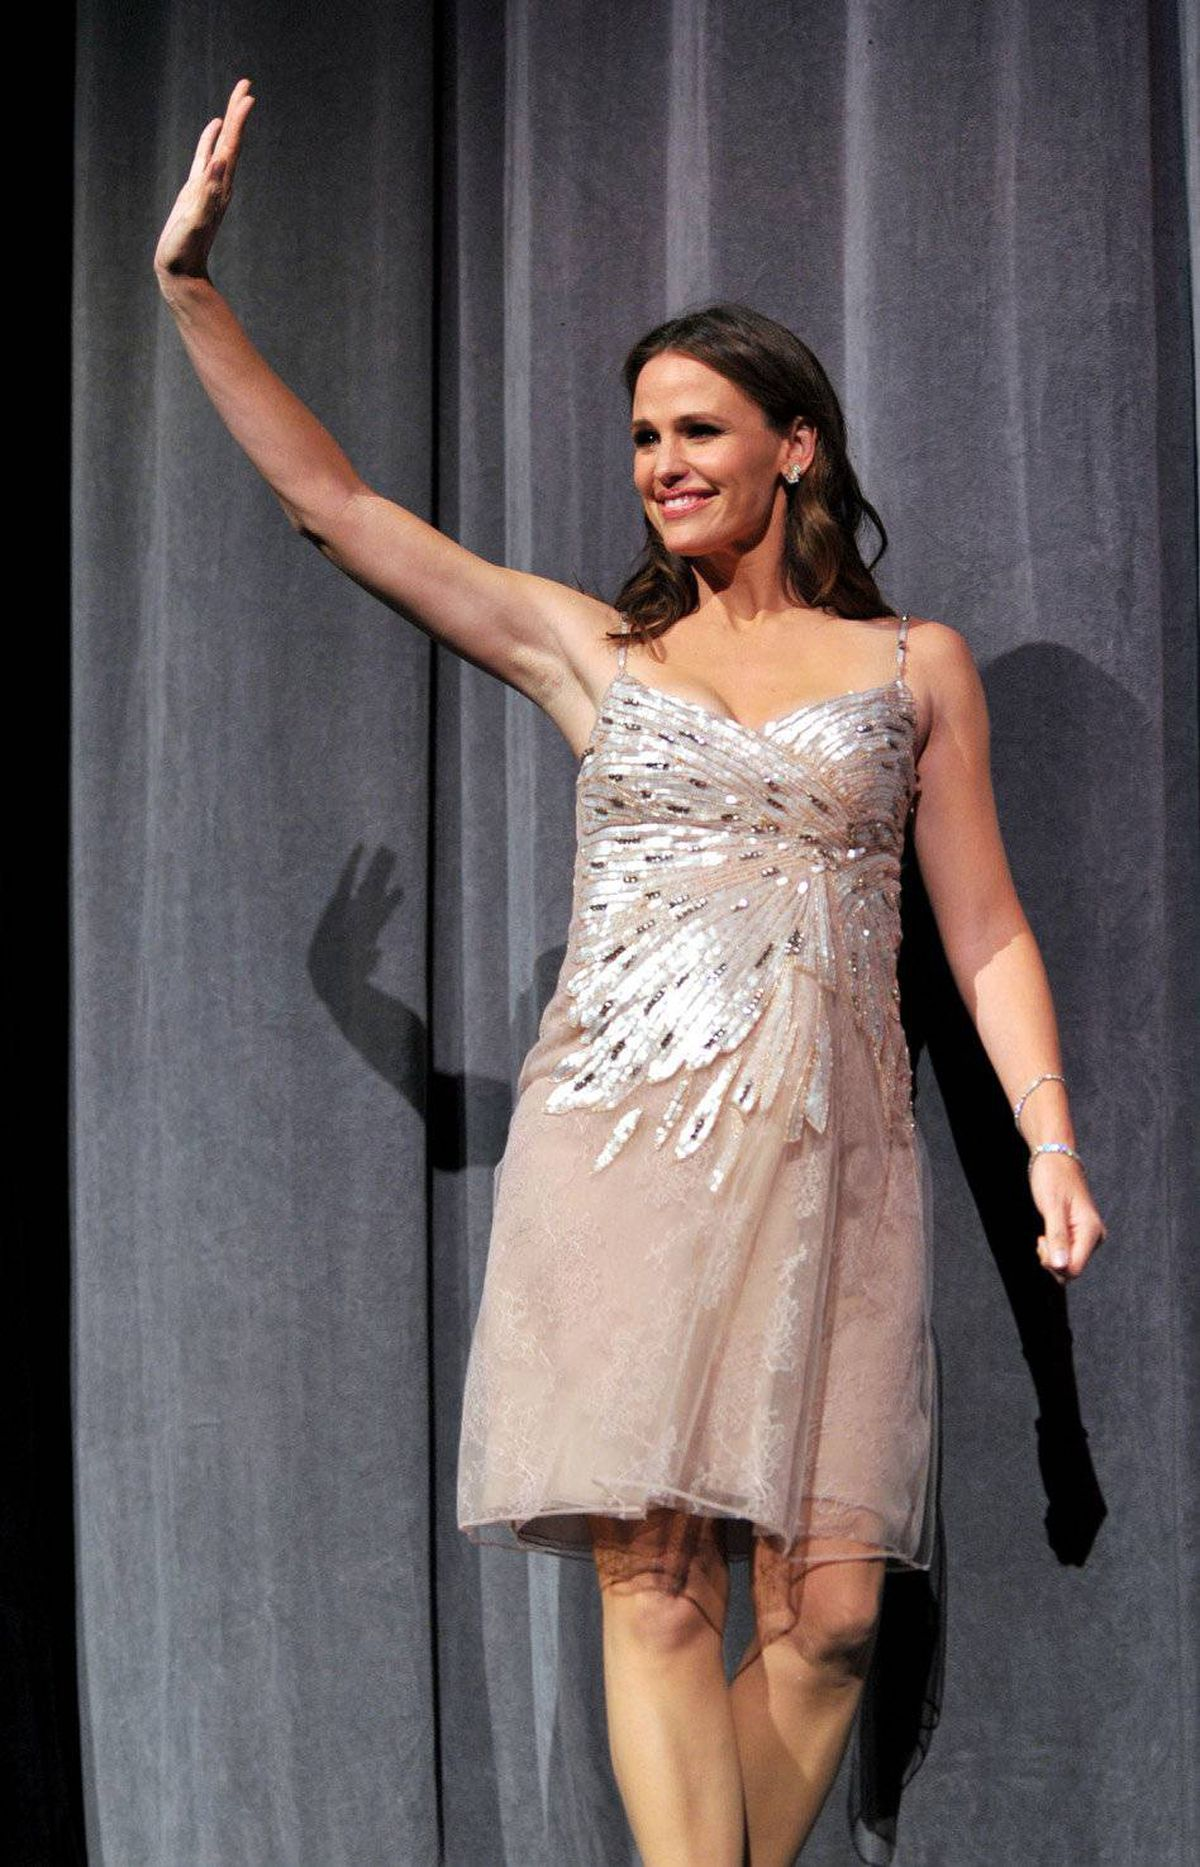 Actress Jennifer Garner attends the Butter premiere at Roy Thomson Hall during the 2011 Toronto International Film Festival on September 13, 2011 in Toronto.